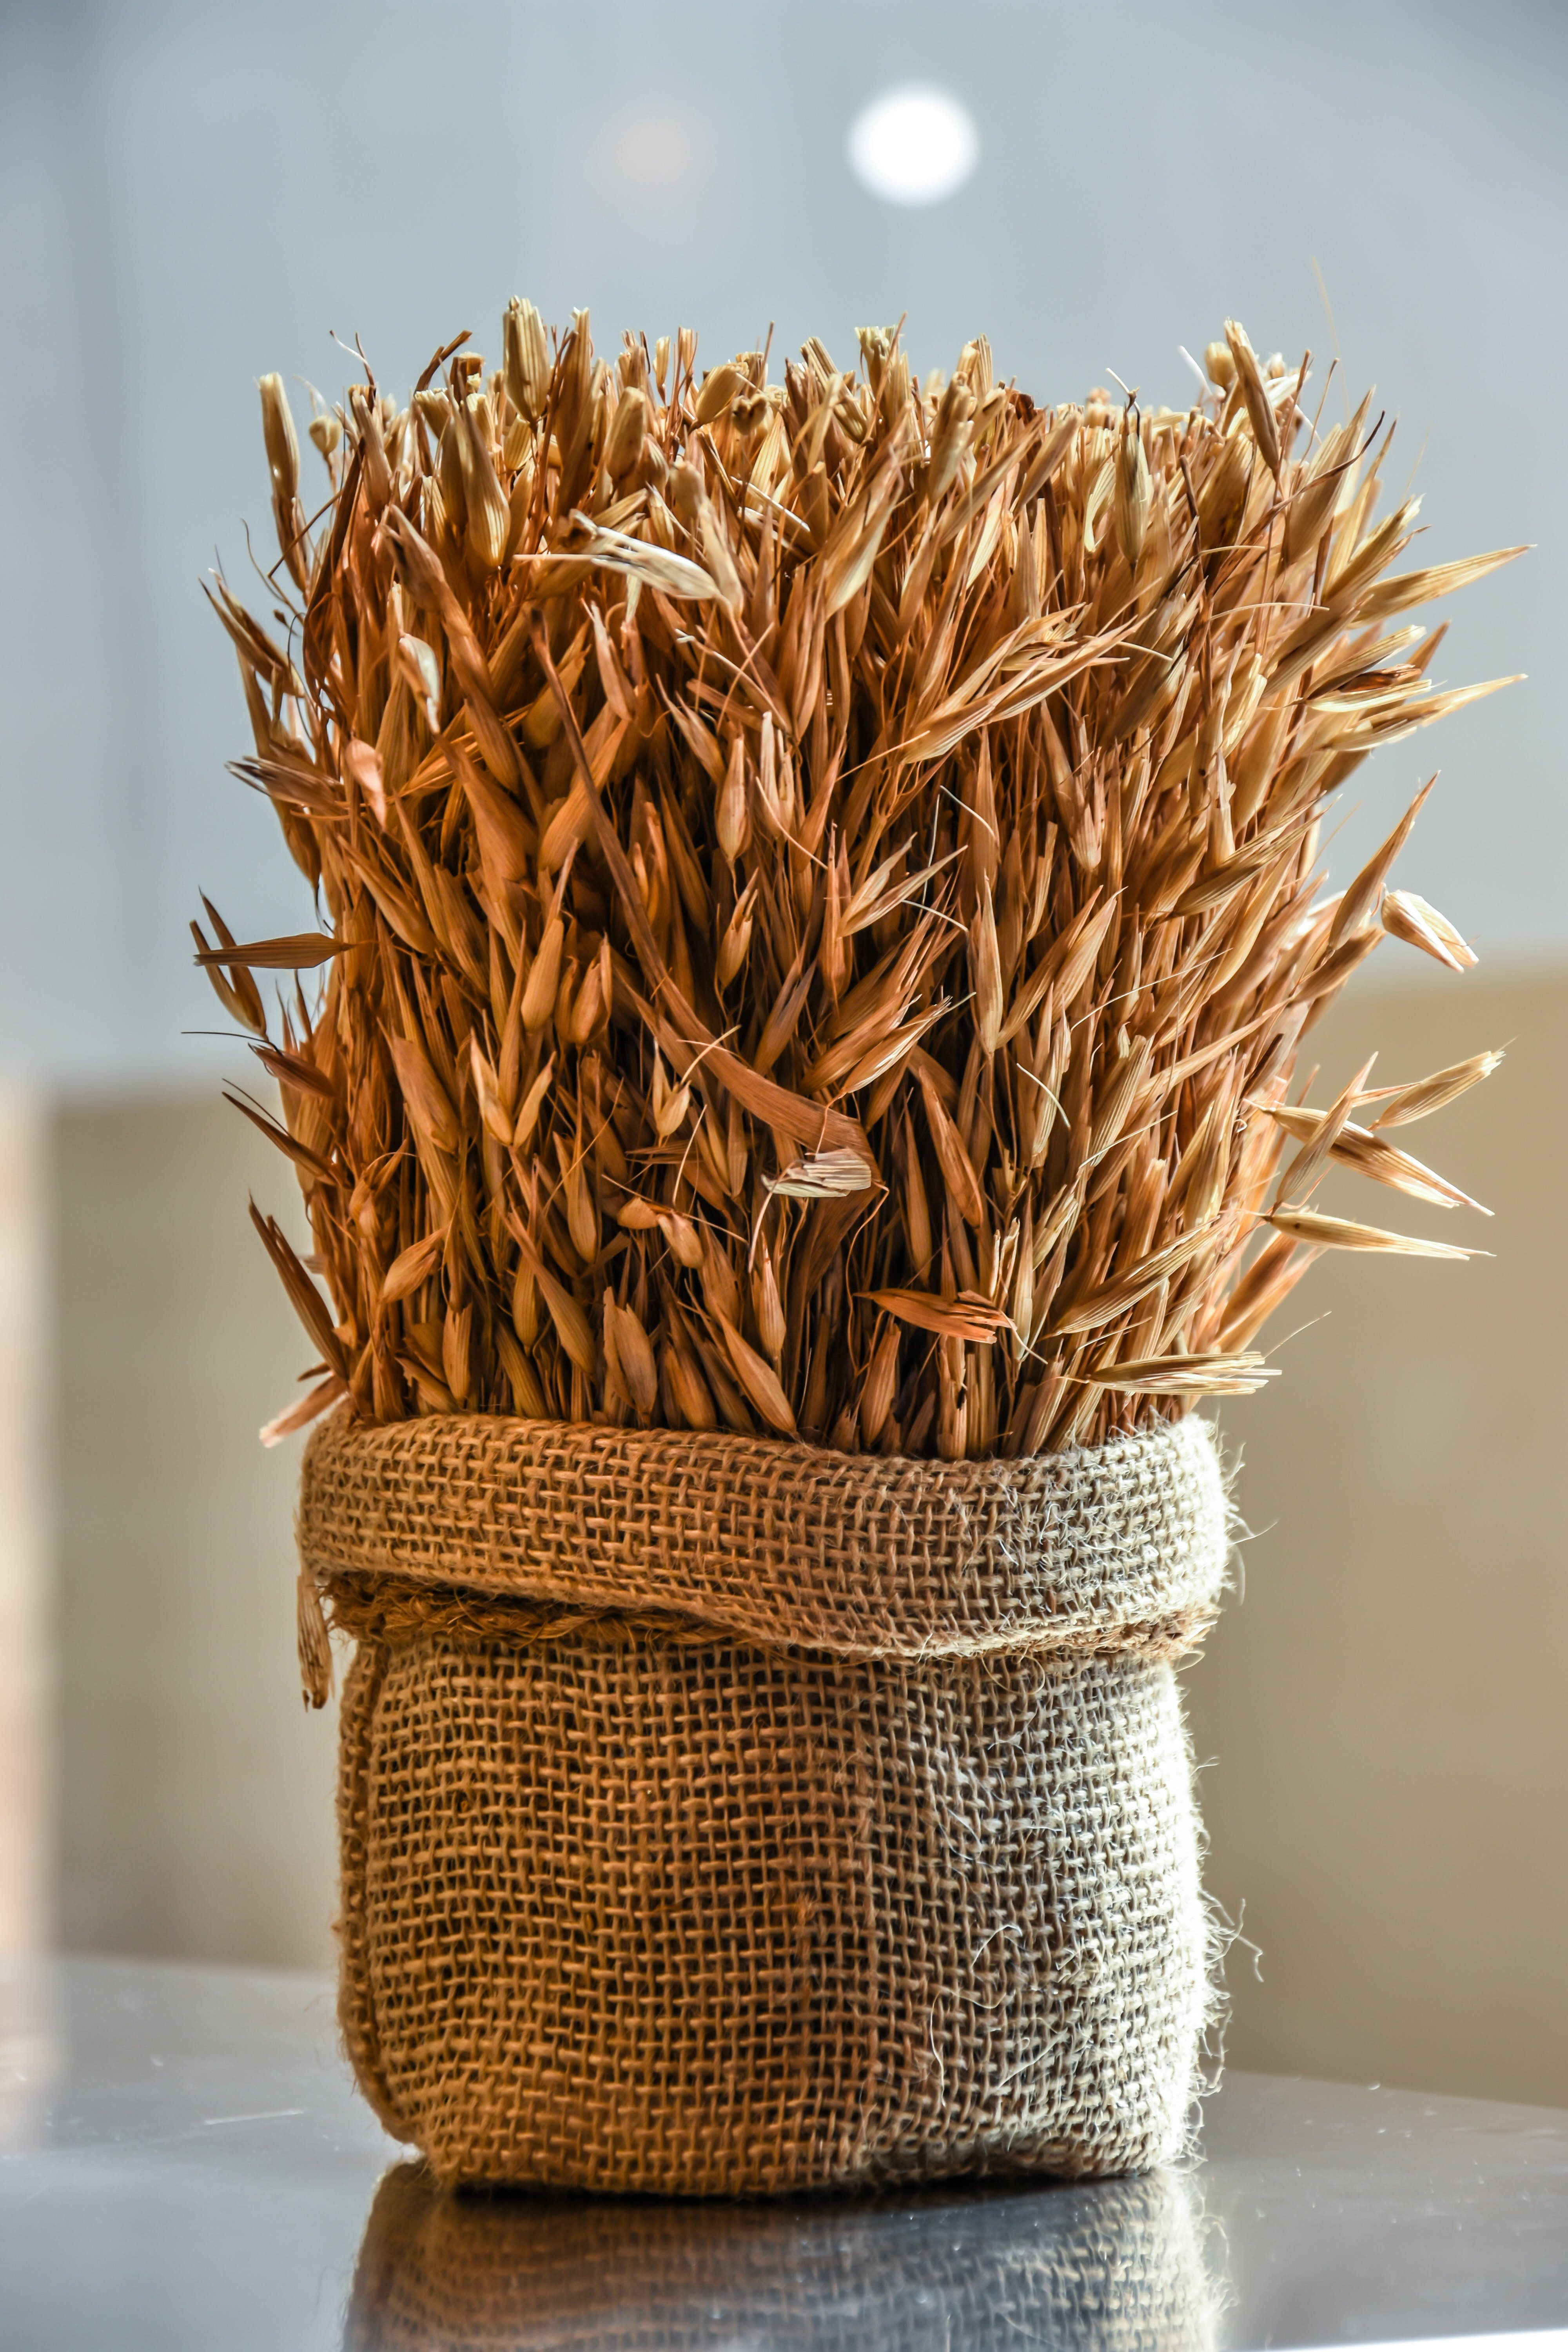 Free stock photo of agriculture, autumn, bakery, barley